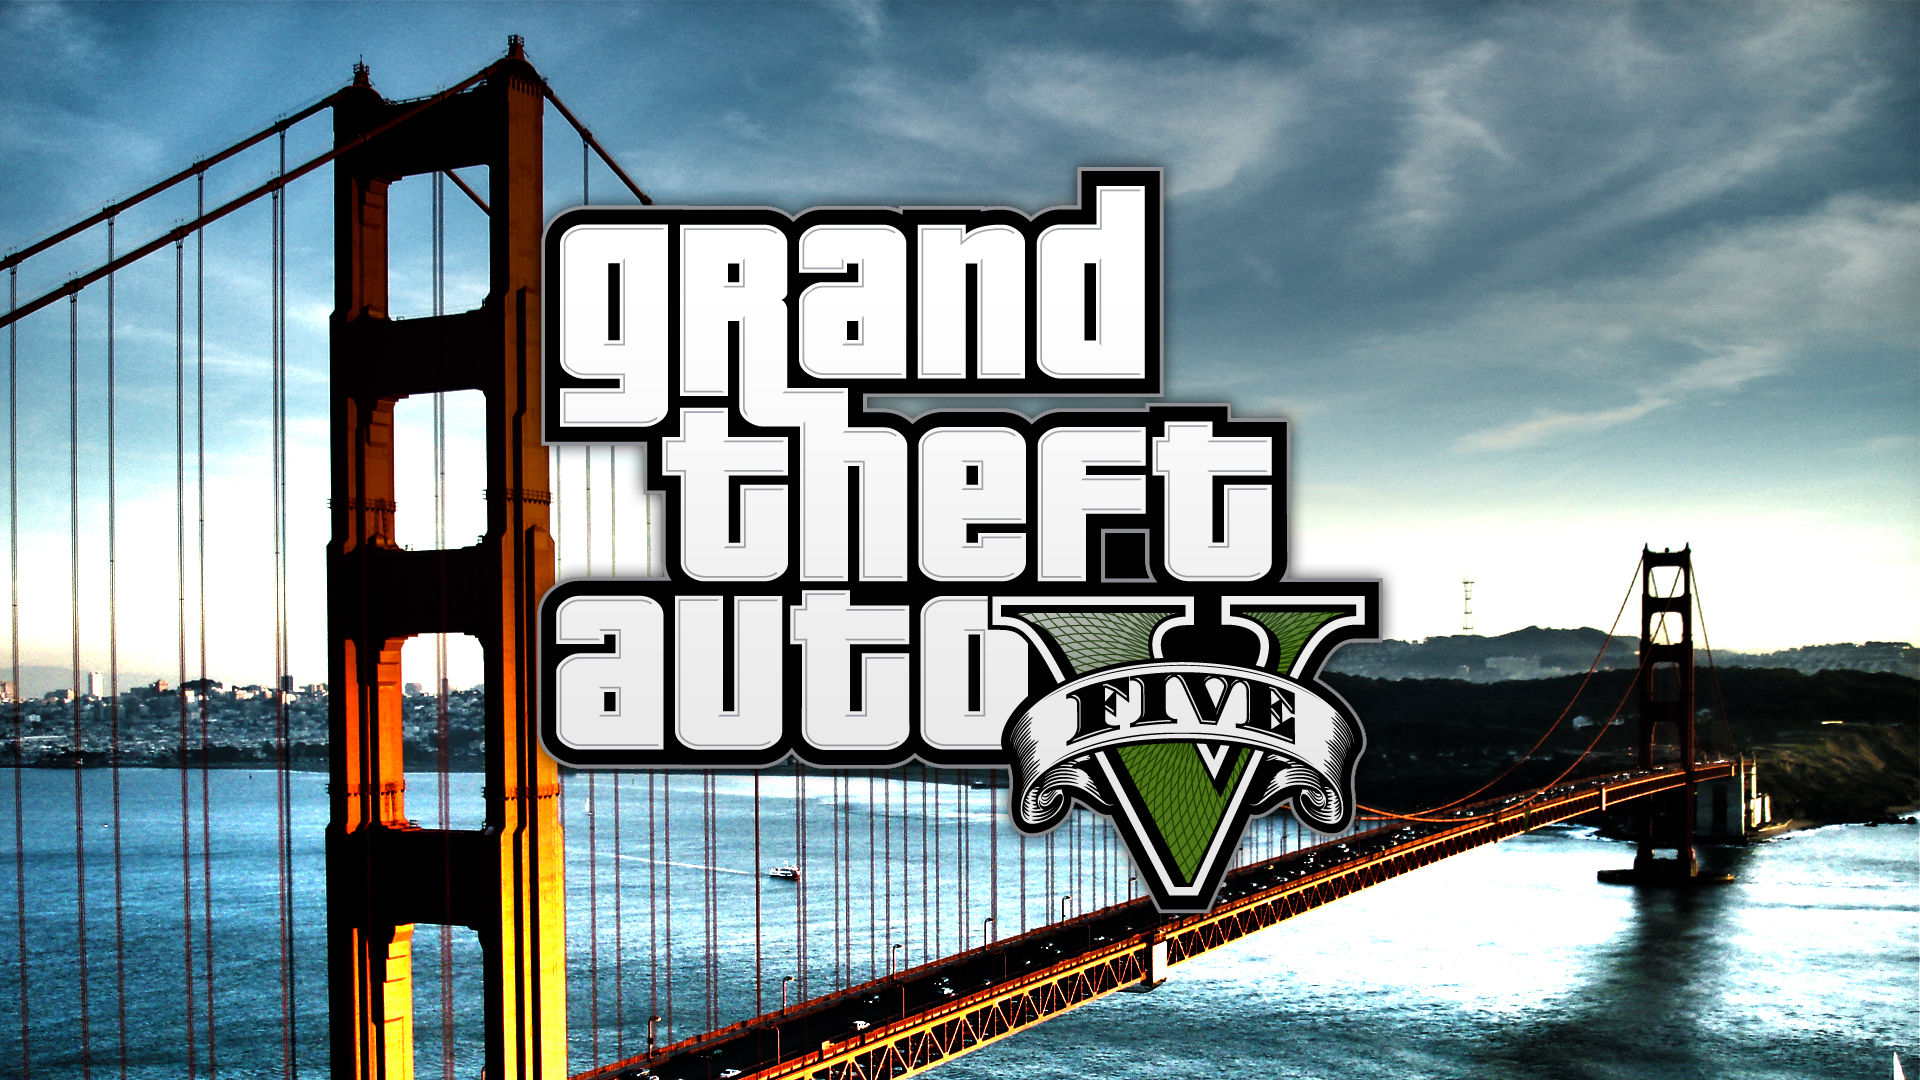 gta v wallpaper 1080p hd - wallpapersafari